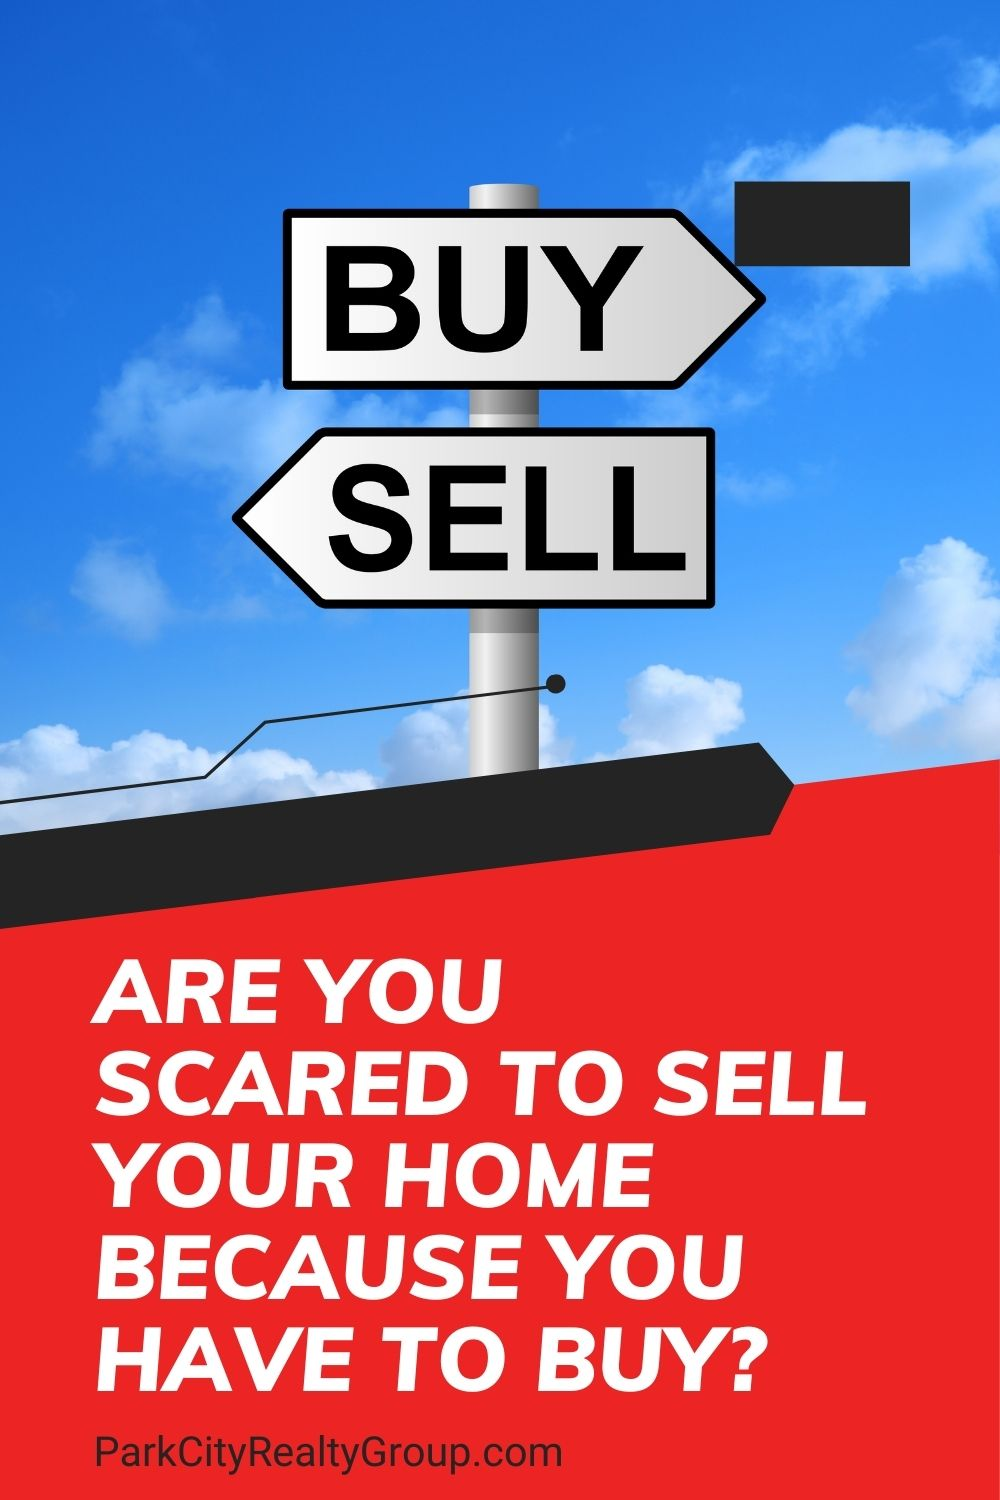 Are You Scared to Sell Your Home When You Have to Buy?